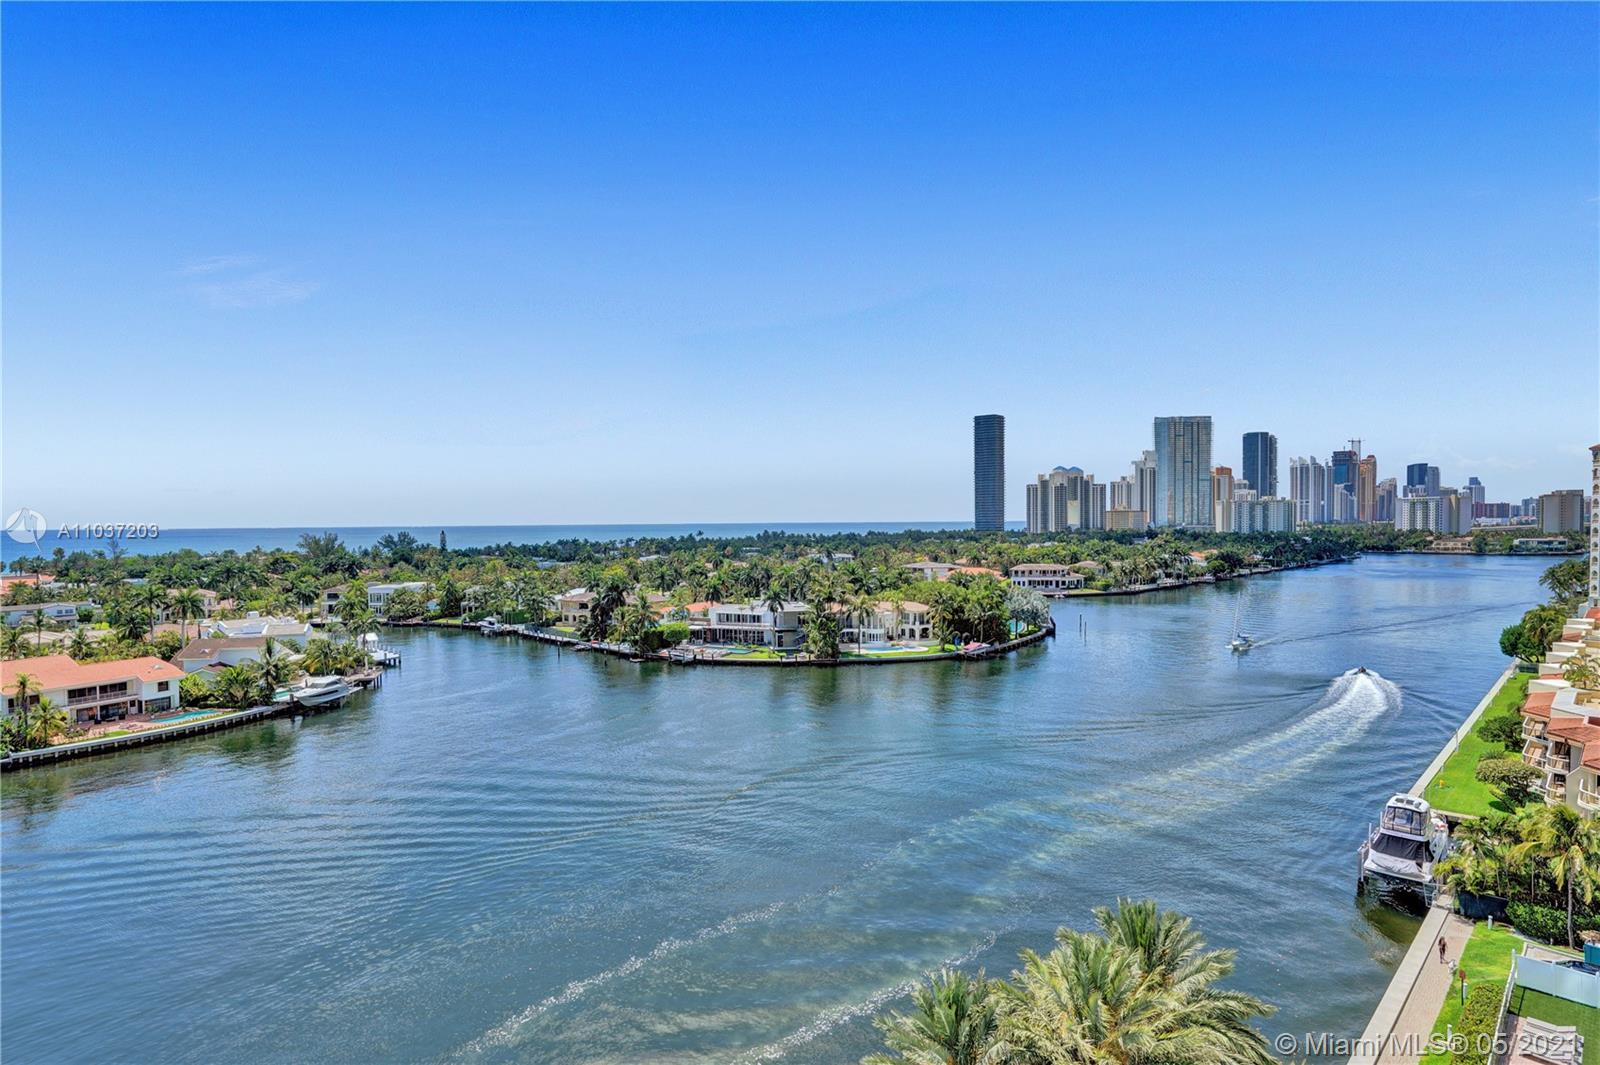 Photo of 20201 Country Club Dr #1006, Aventura, Florida, 33180 - View of the infinity pool.